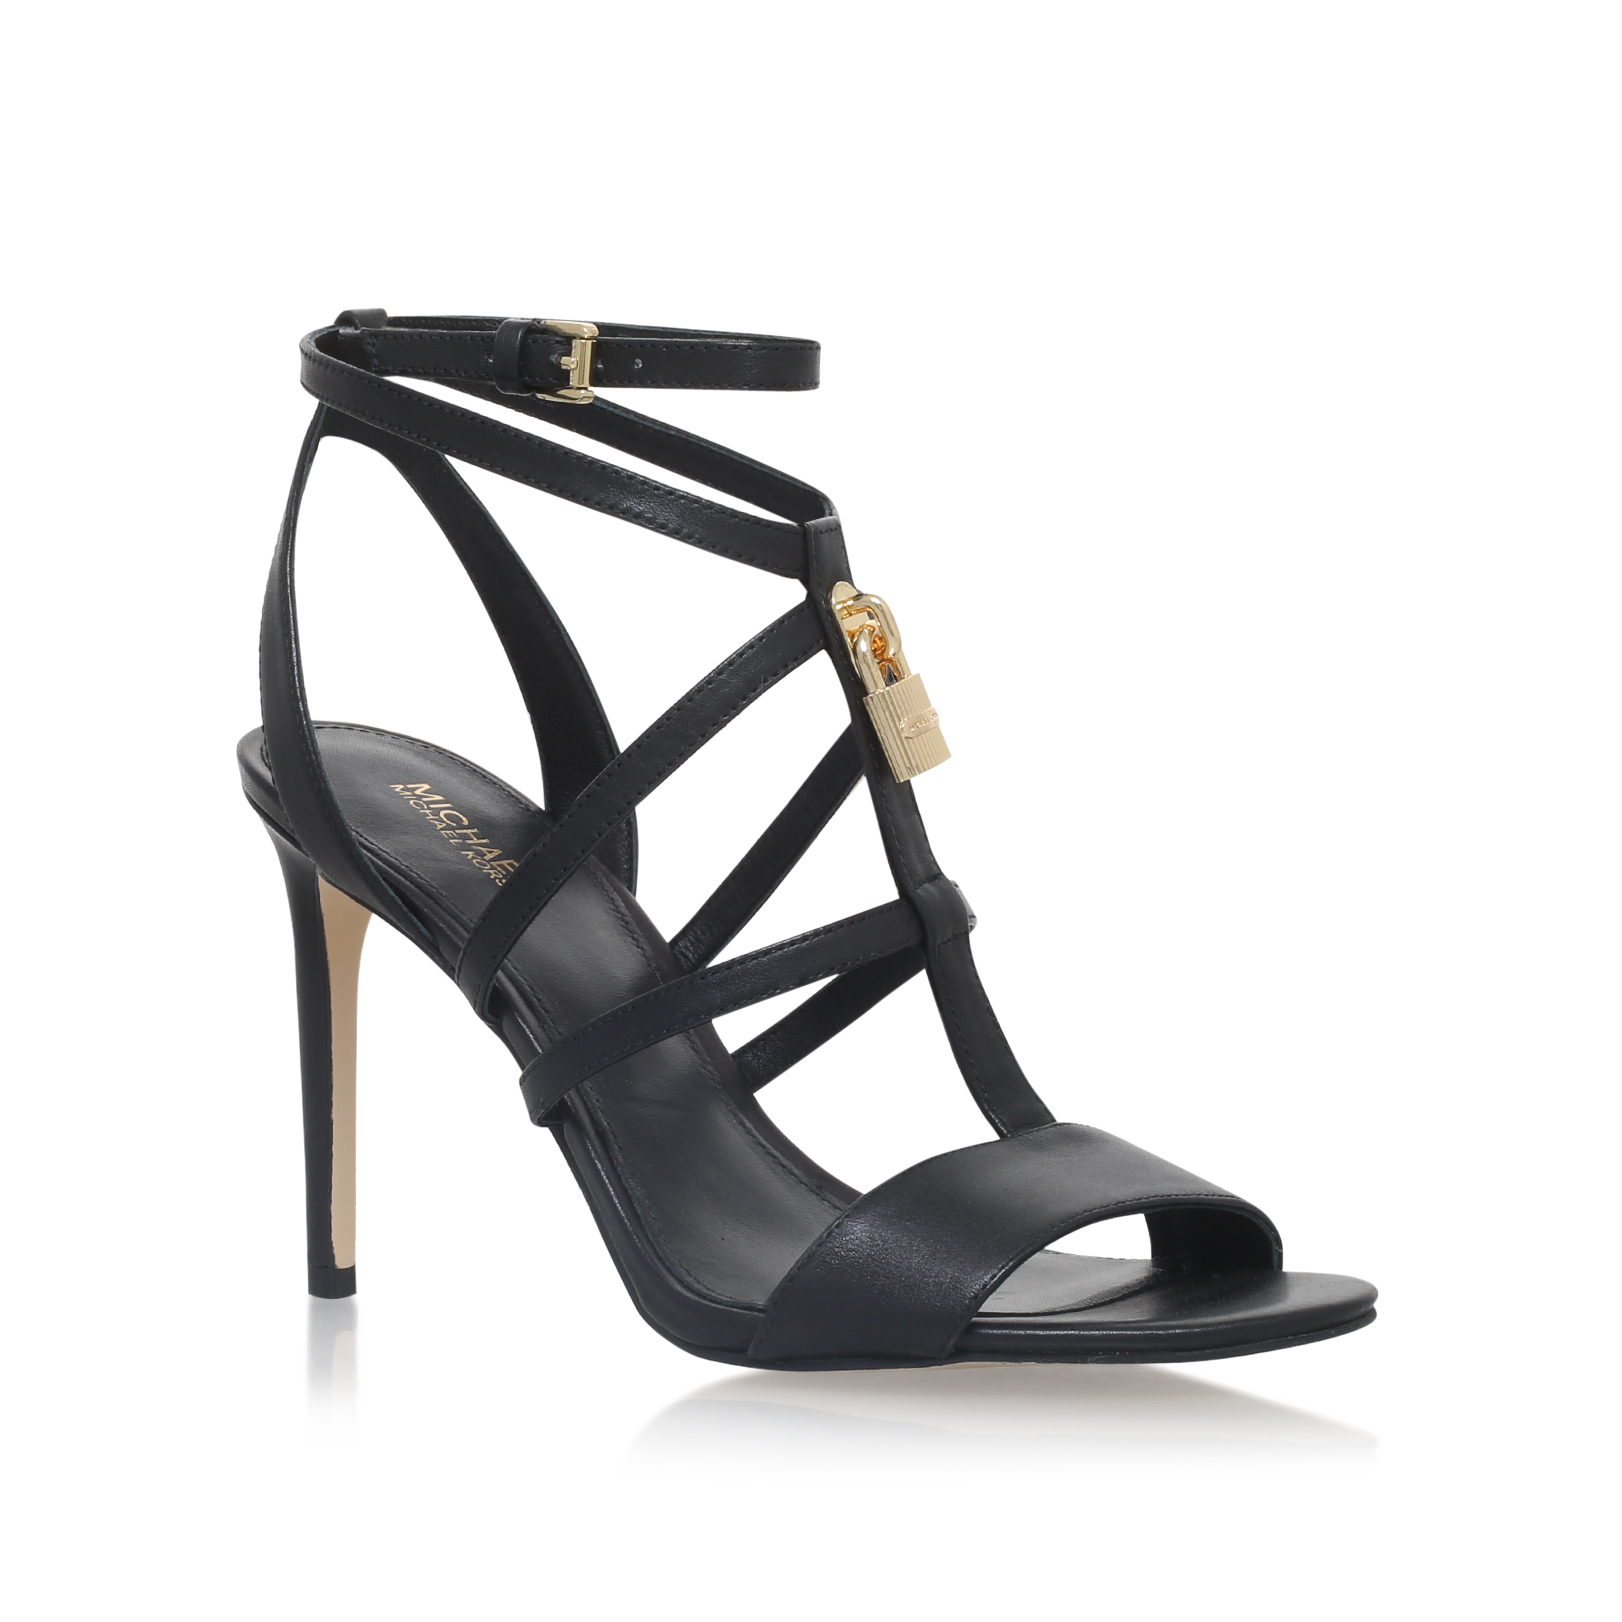 153e23ac26d6 ANTOINETTE SANDAL Michael Michael Kors Antoinette Black Leather High ...